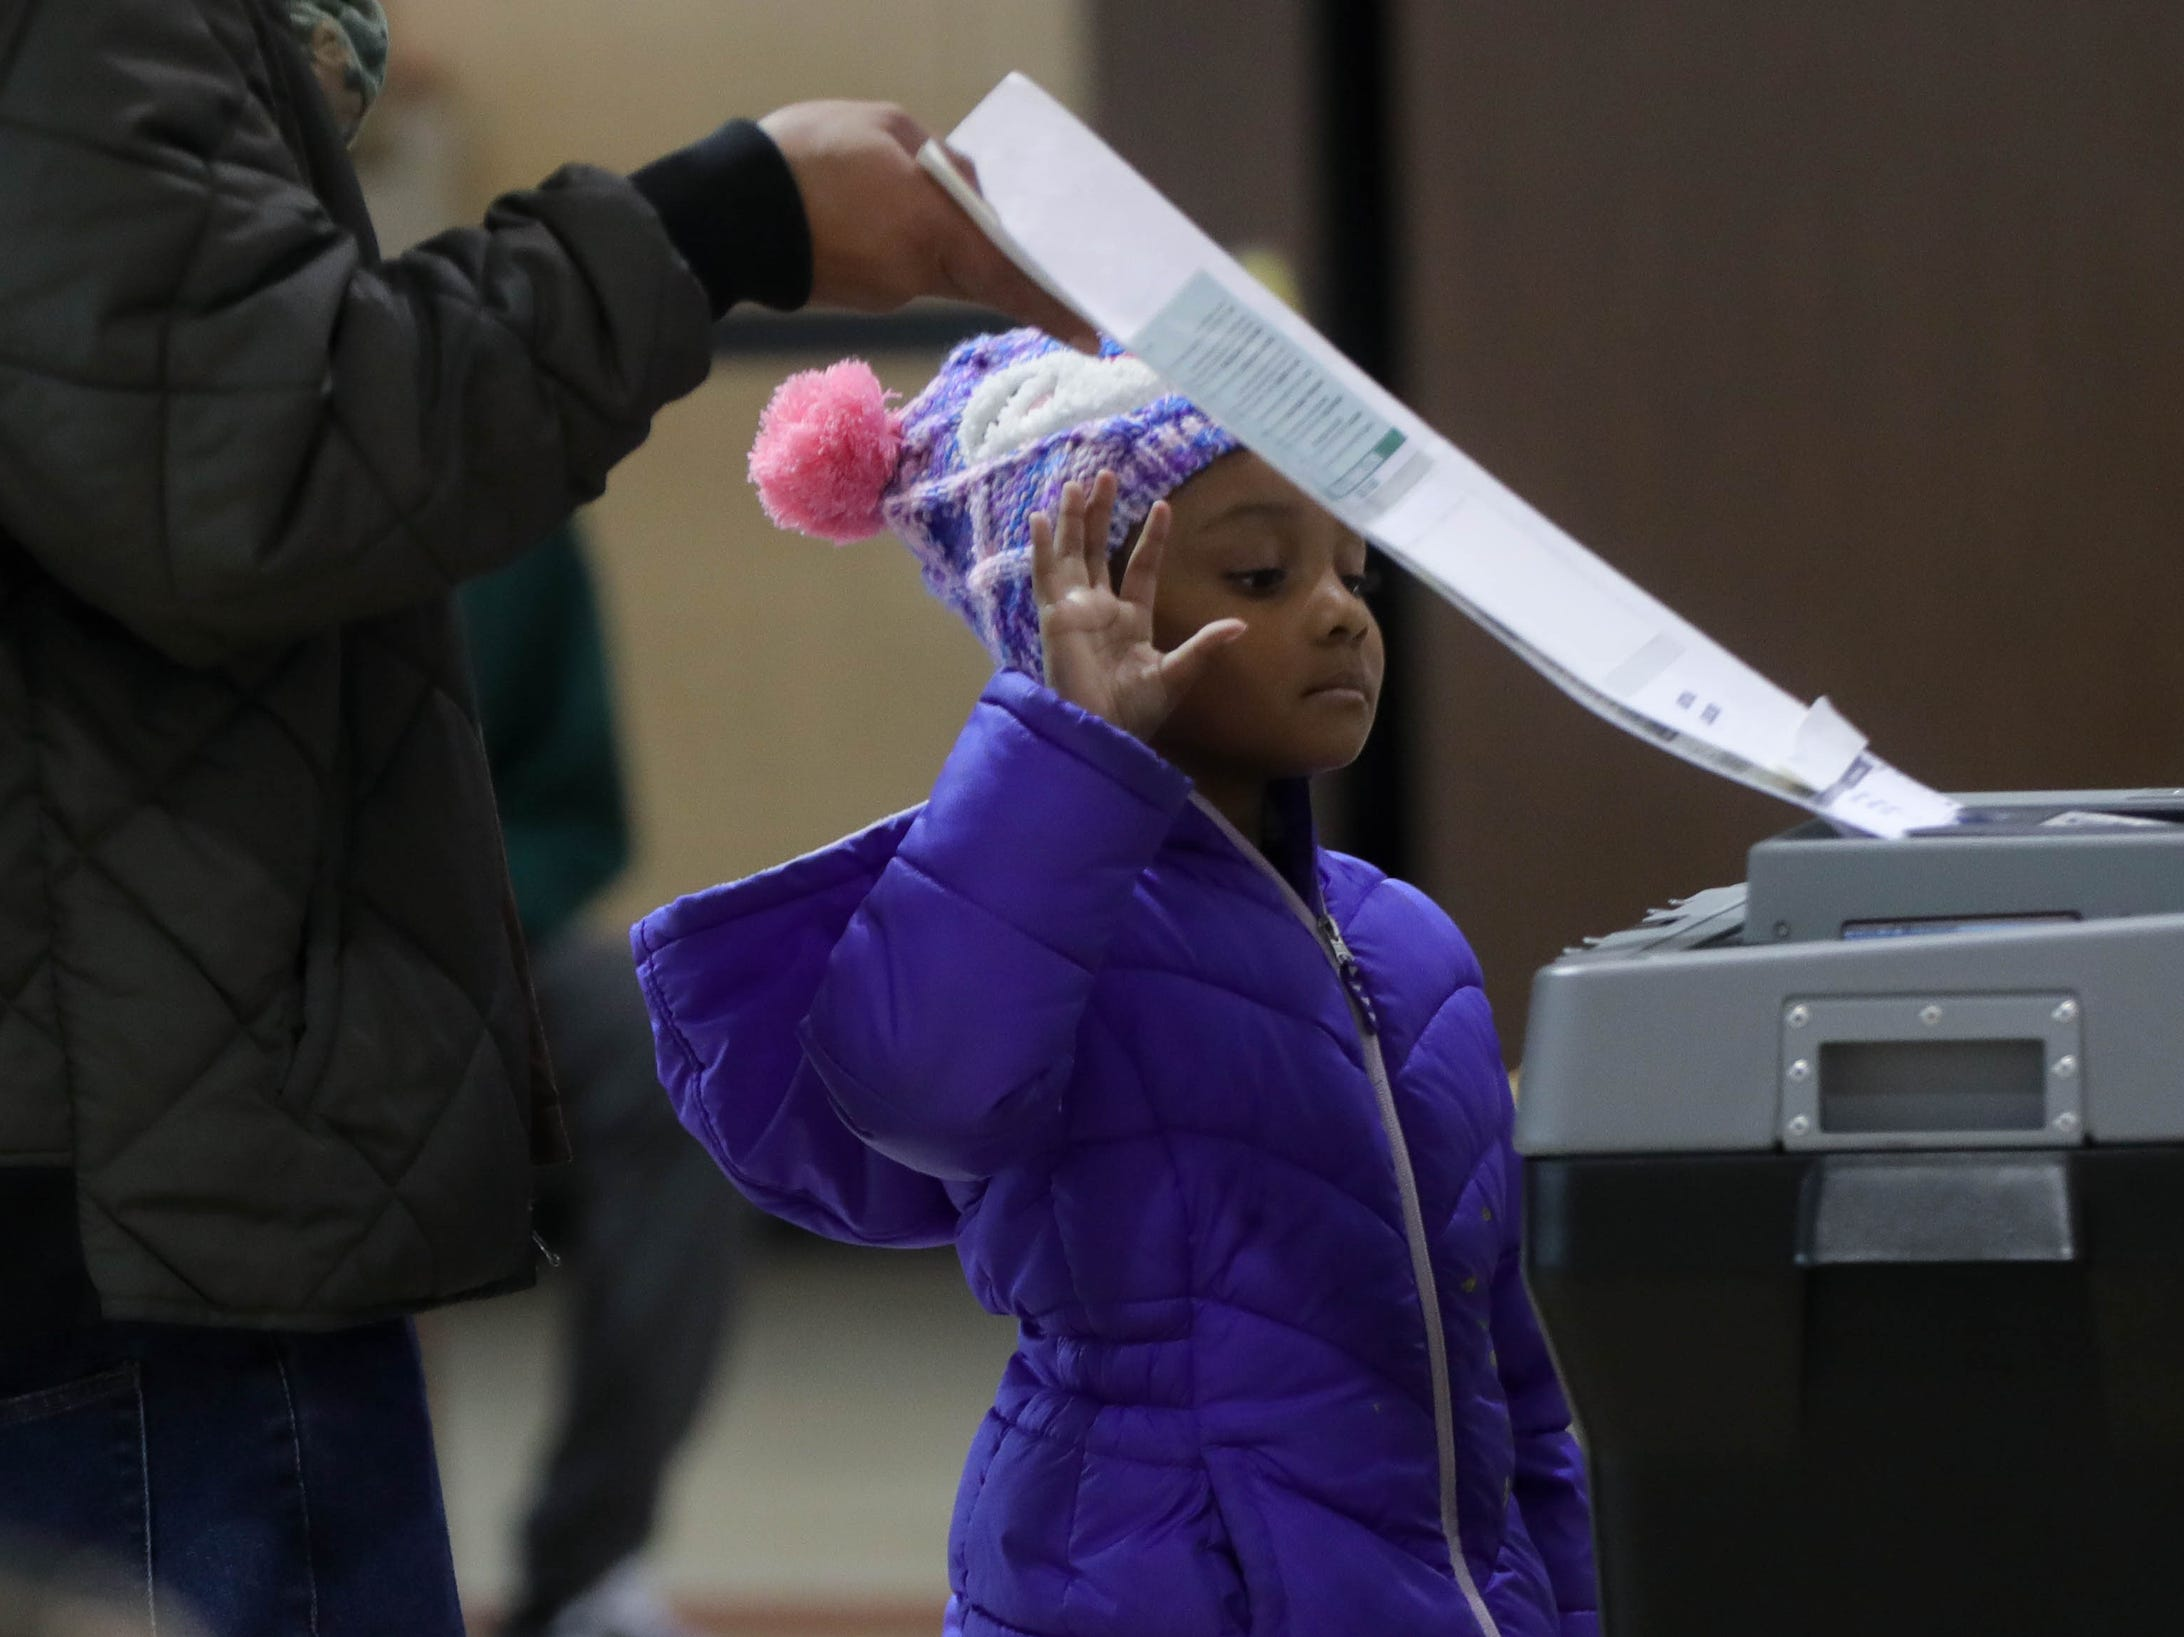 Layla Wilson 6, helps her dad Linwood Wilson cast his vote Tuesday, November 6, 2018 at the 8th precinct in East Pointe, Mich.